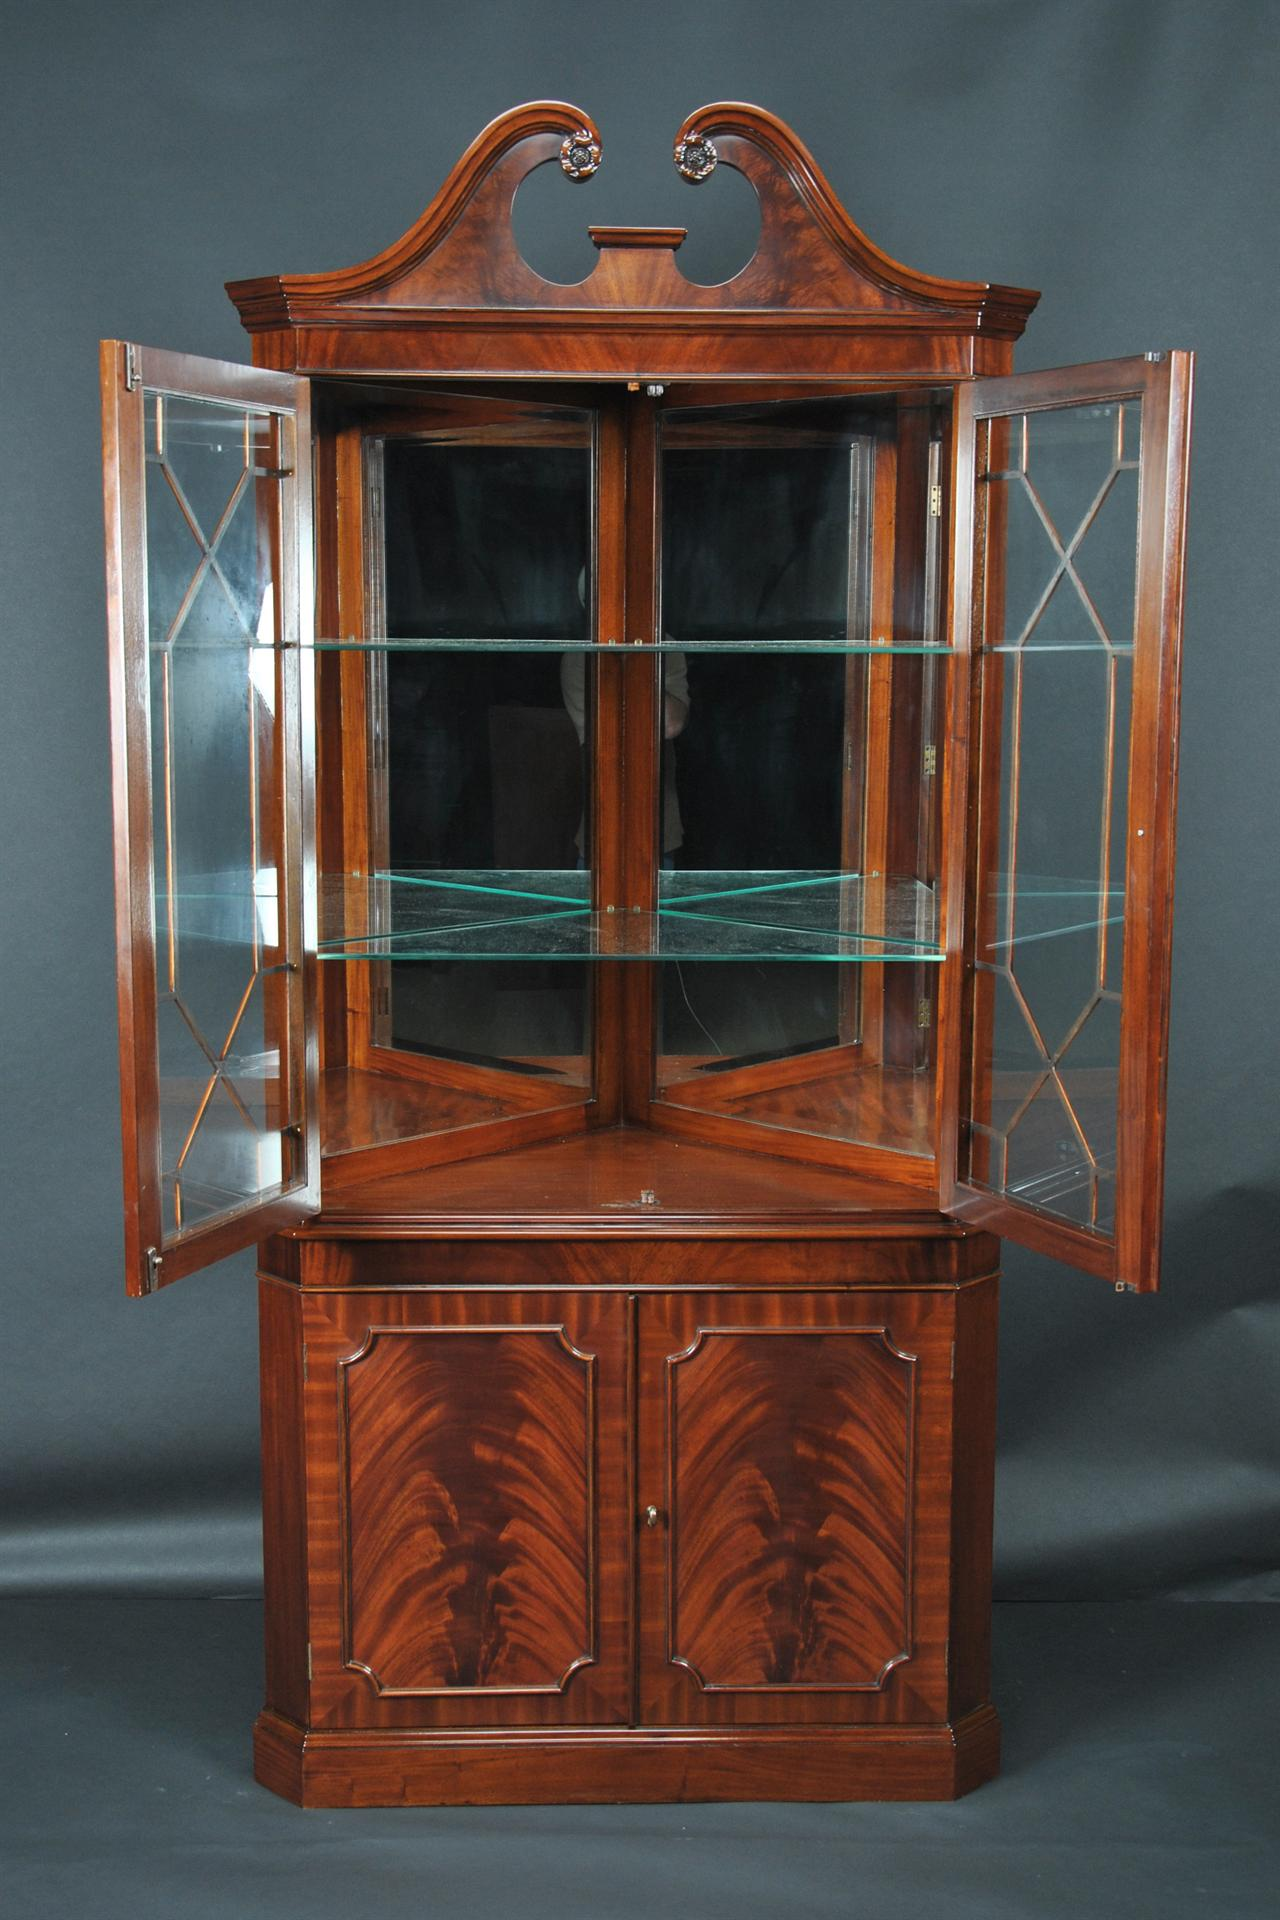 corner china cabinet or corner hutch for the dining room - Corner China Hutch. Victorian Antique Rosewood Corner China